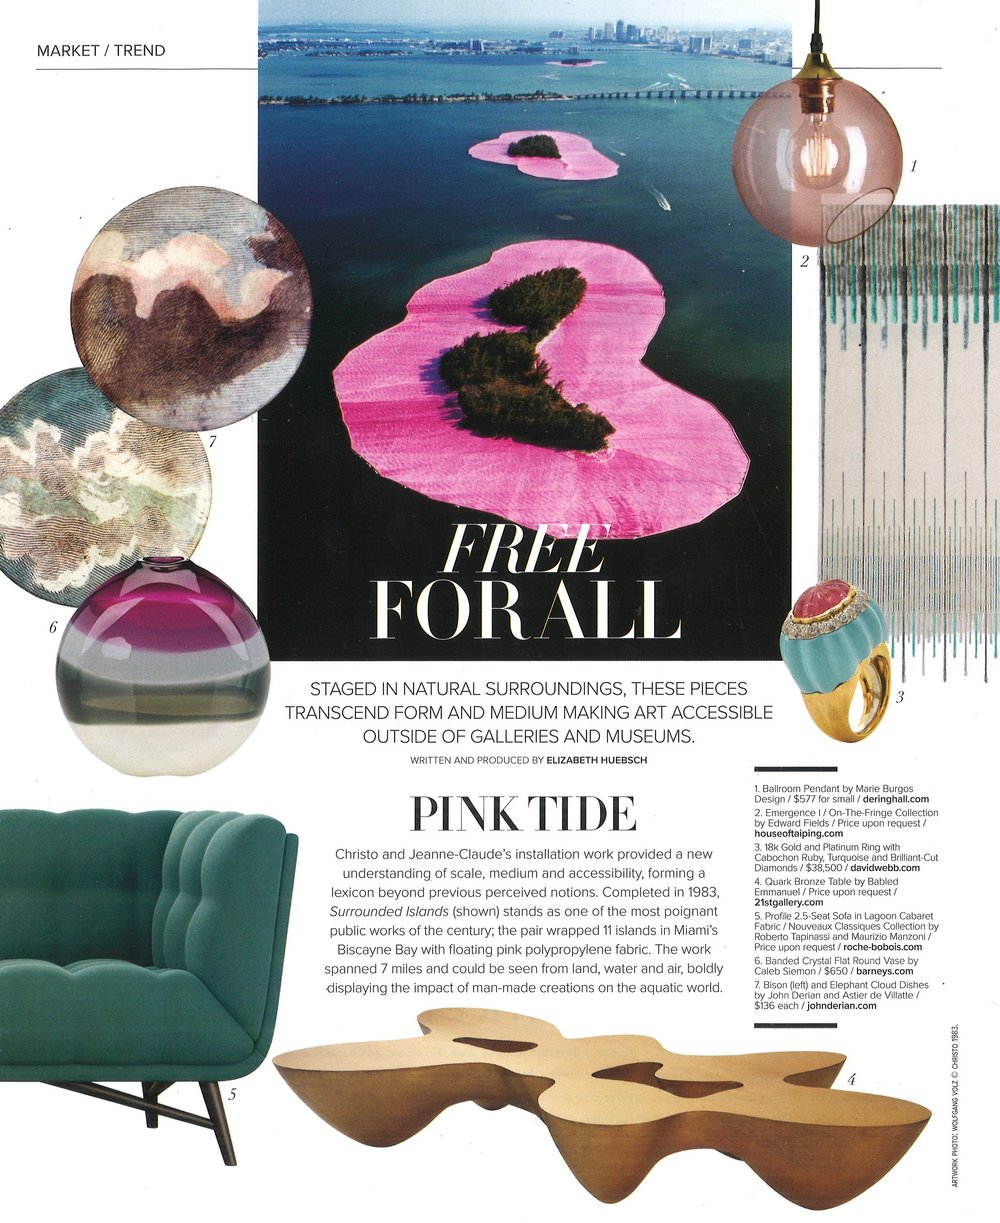 luxe march april 2019 p78.jpg